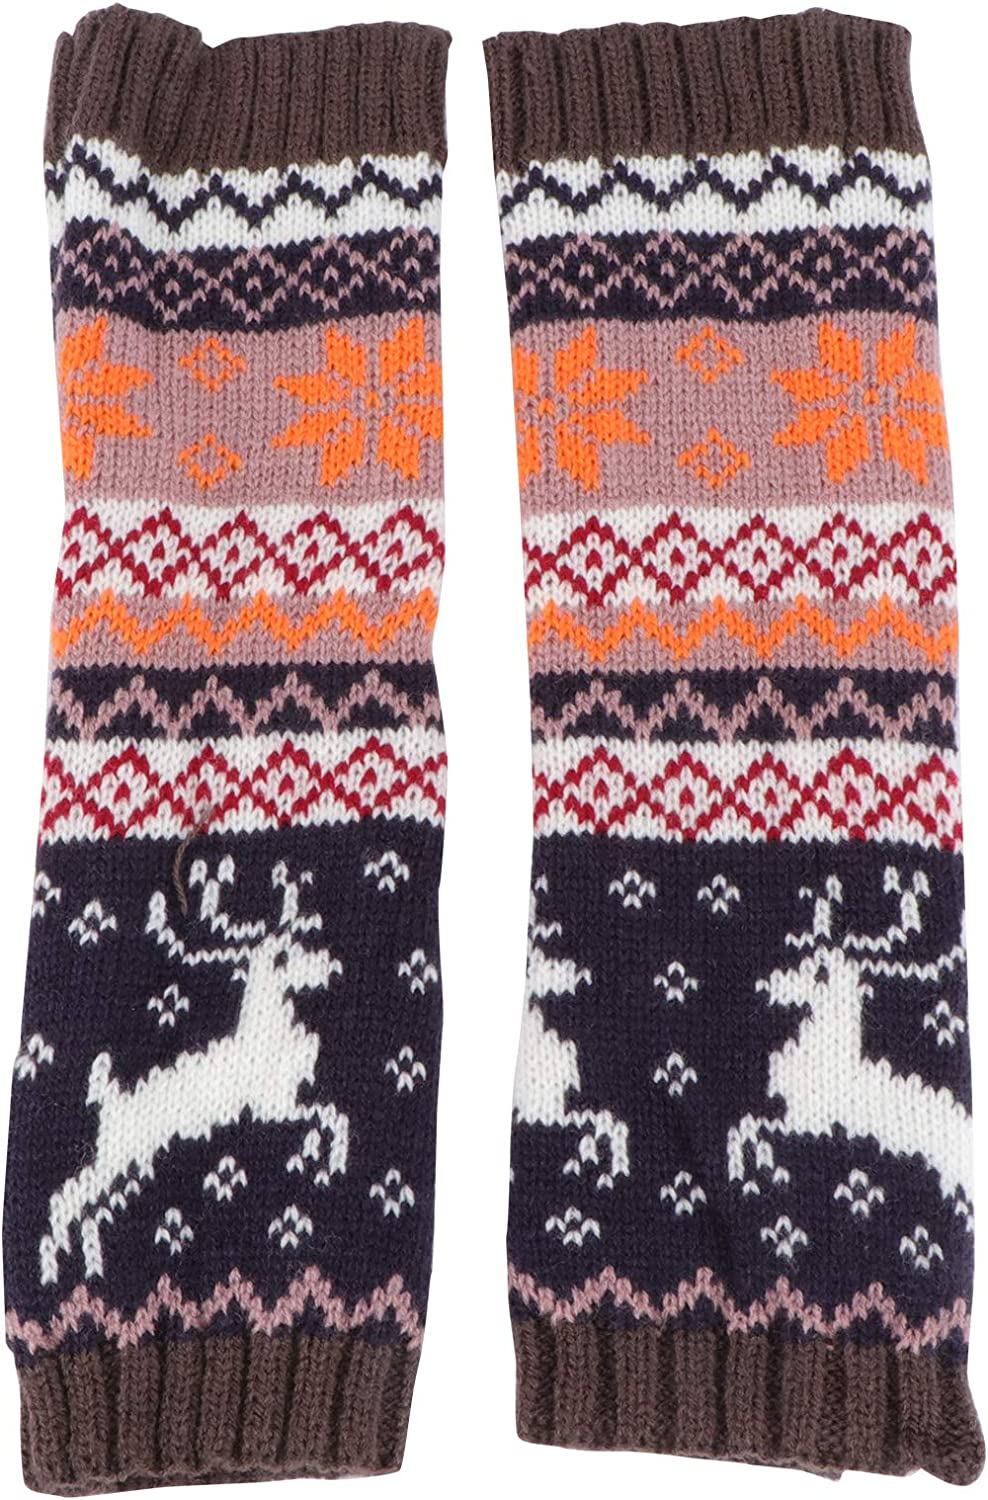 ABOOFAN 1 Pair of Knitting Glove Arm Sleeve Winter Cartoon Christmas Gloves for Lady Party Favor